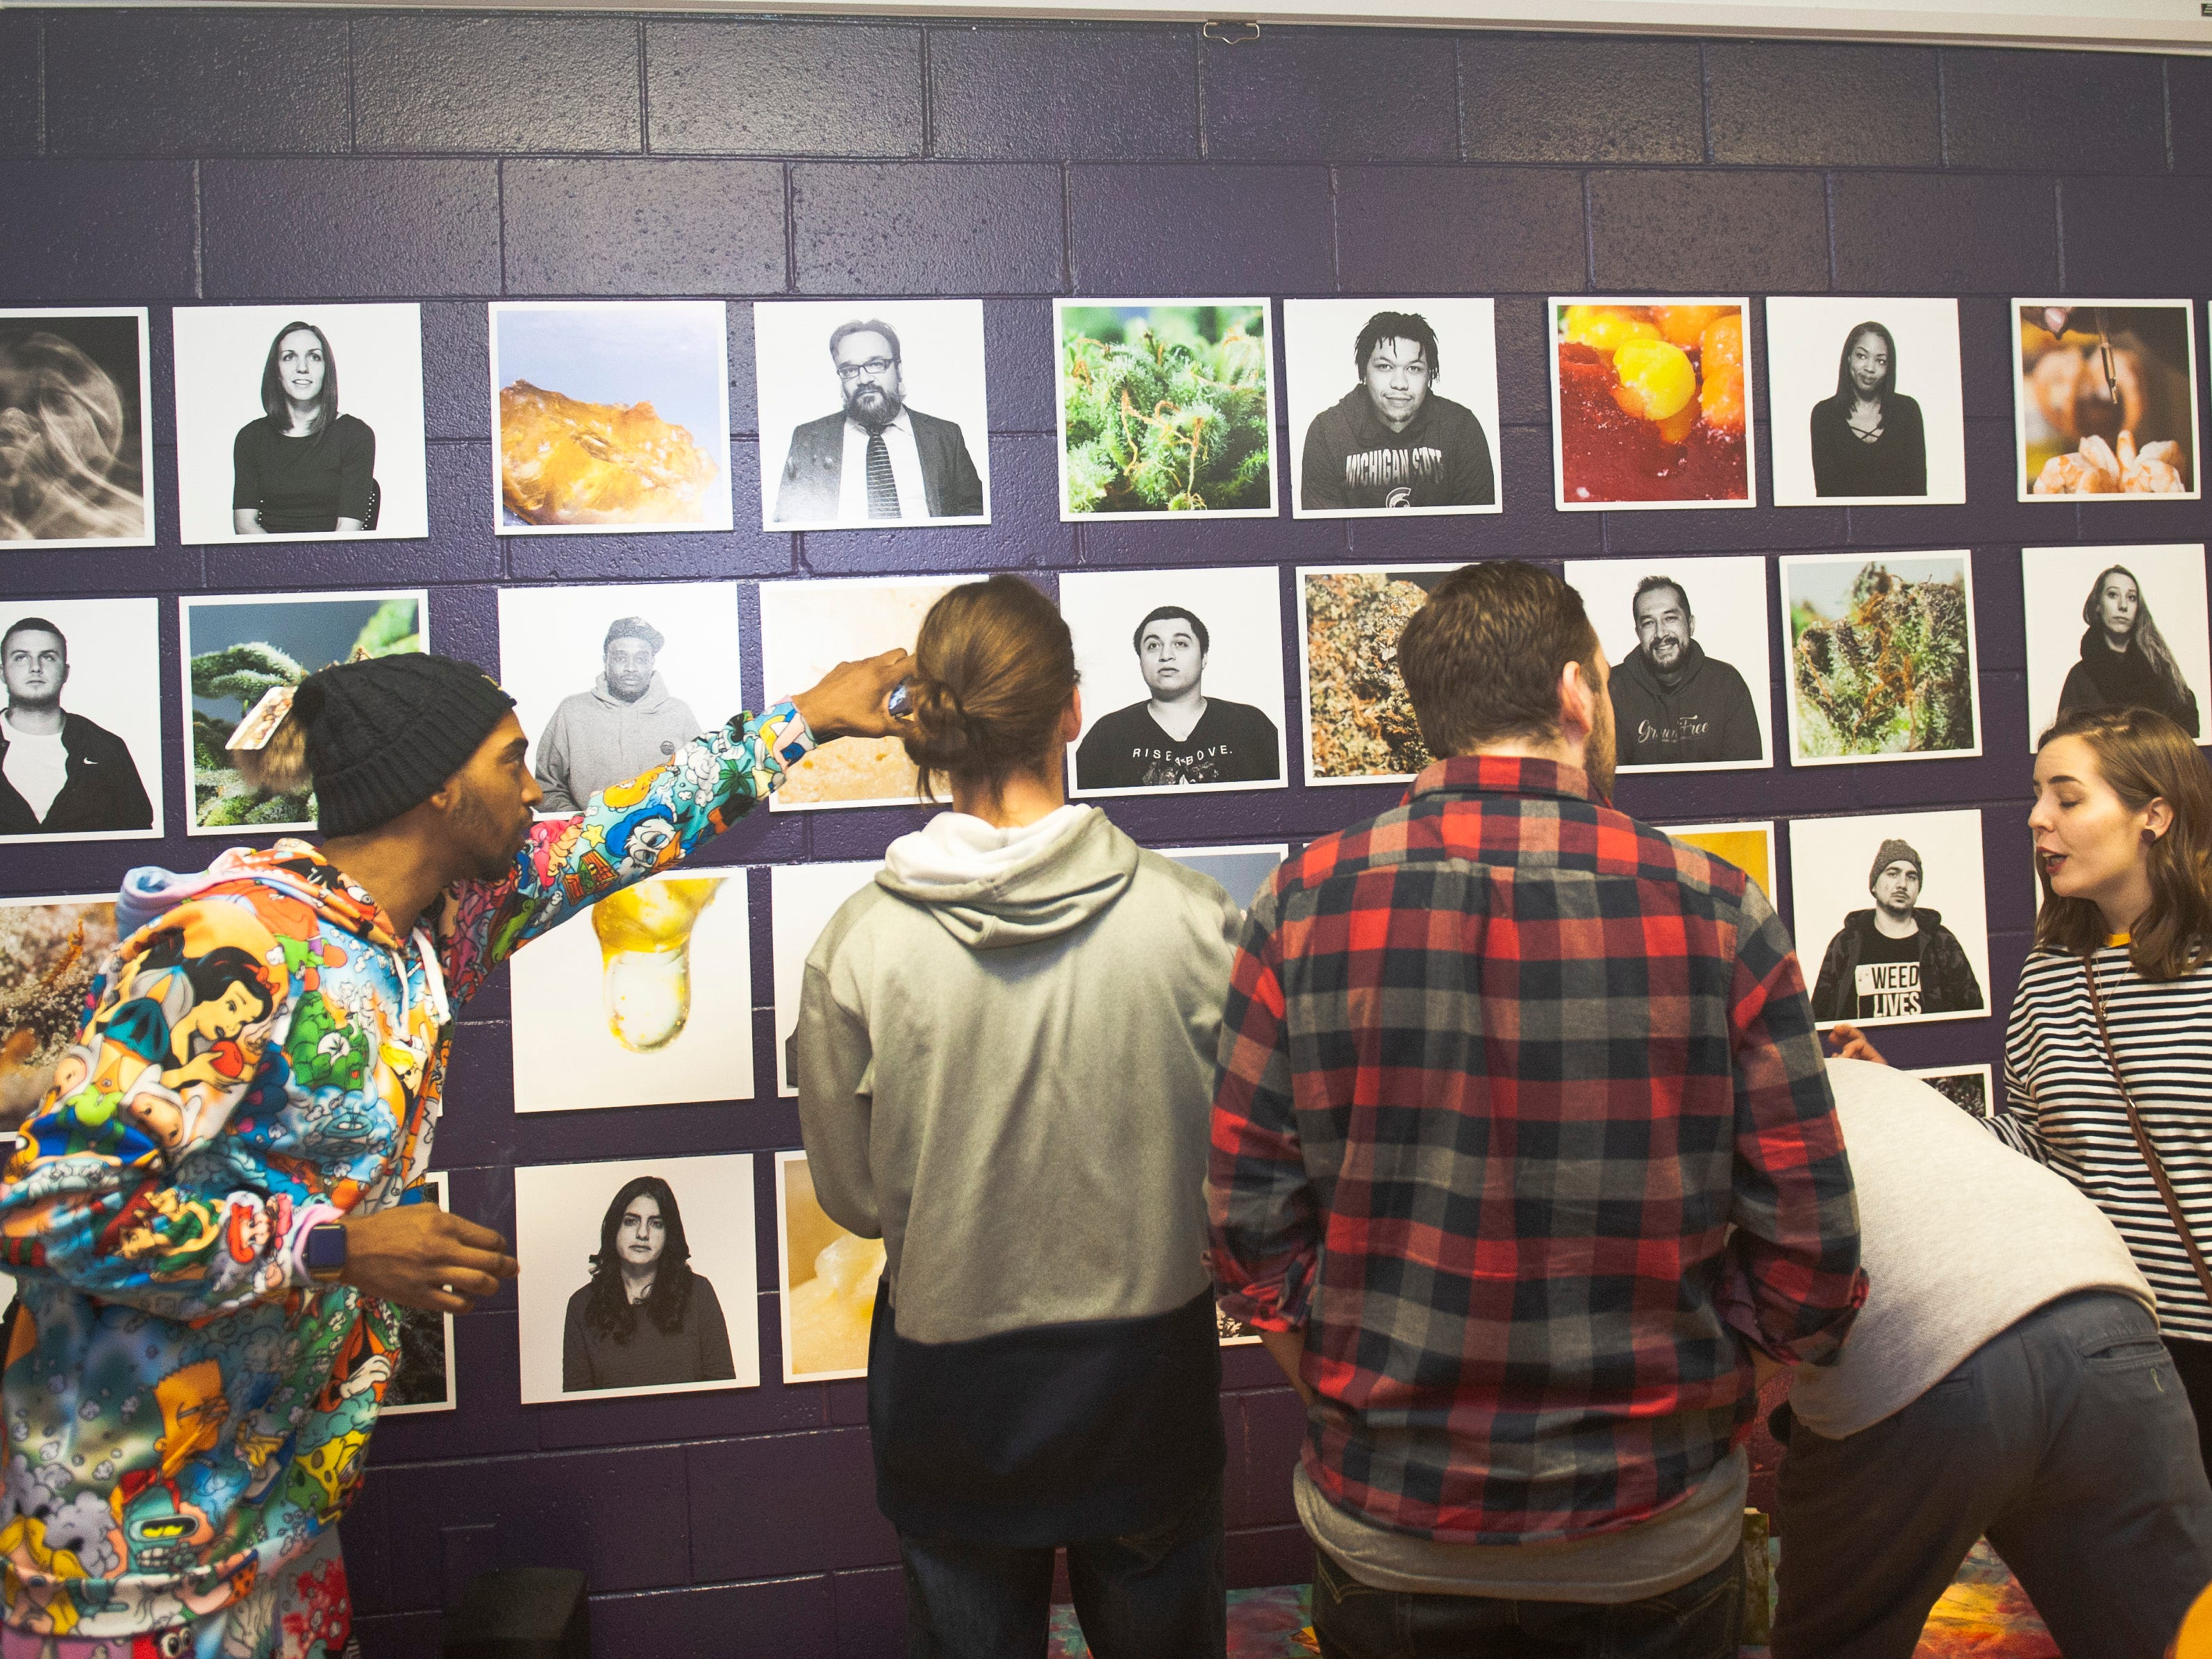 """Event guests check out the art of photographer Erin Short, the featured artist at """"The Art of Cannabis"""" exhibition and tasting event at the Cannabis Counsel in Detroit. Short's CCS senior thesis project explored the lives of Michigan medical marijuana patients and their preferred methods of using cannabis."""